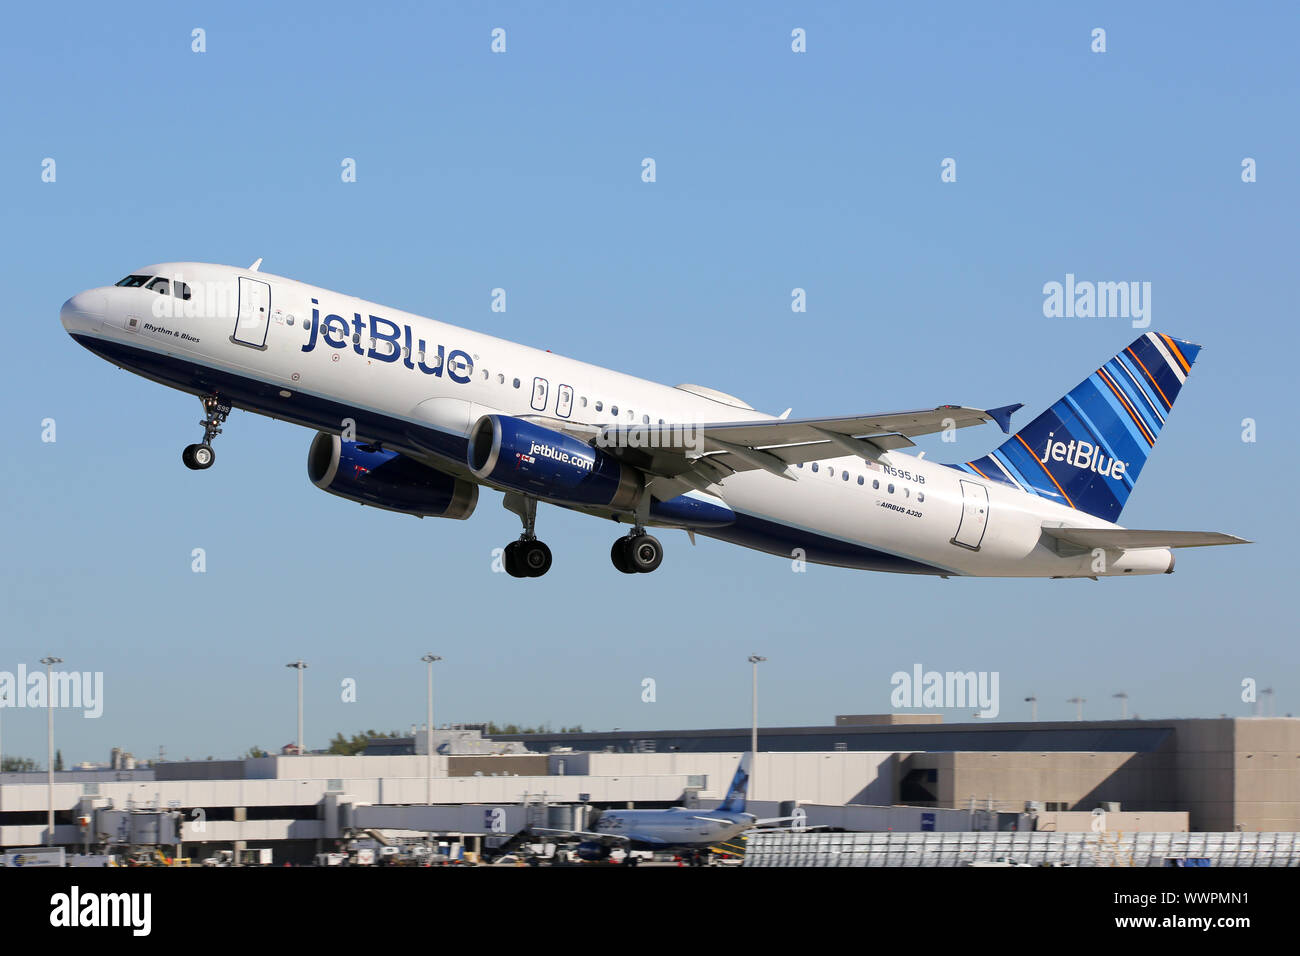 Jetblue Airbus A320 Aircraft Fort Lauderdale Airport Stock Photo